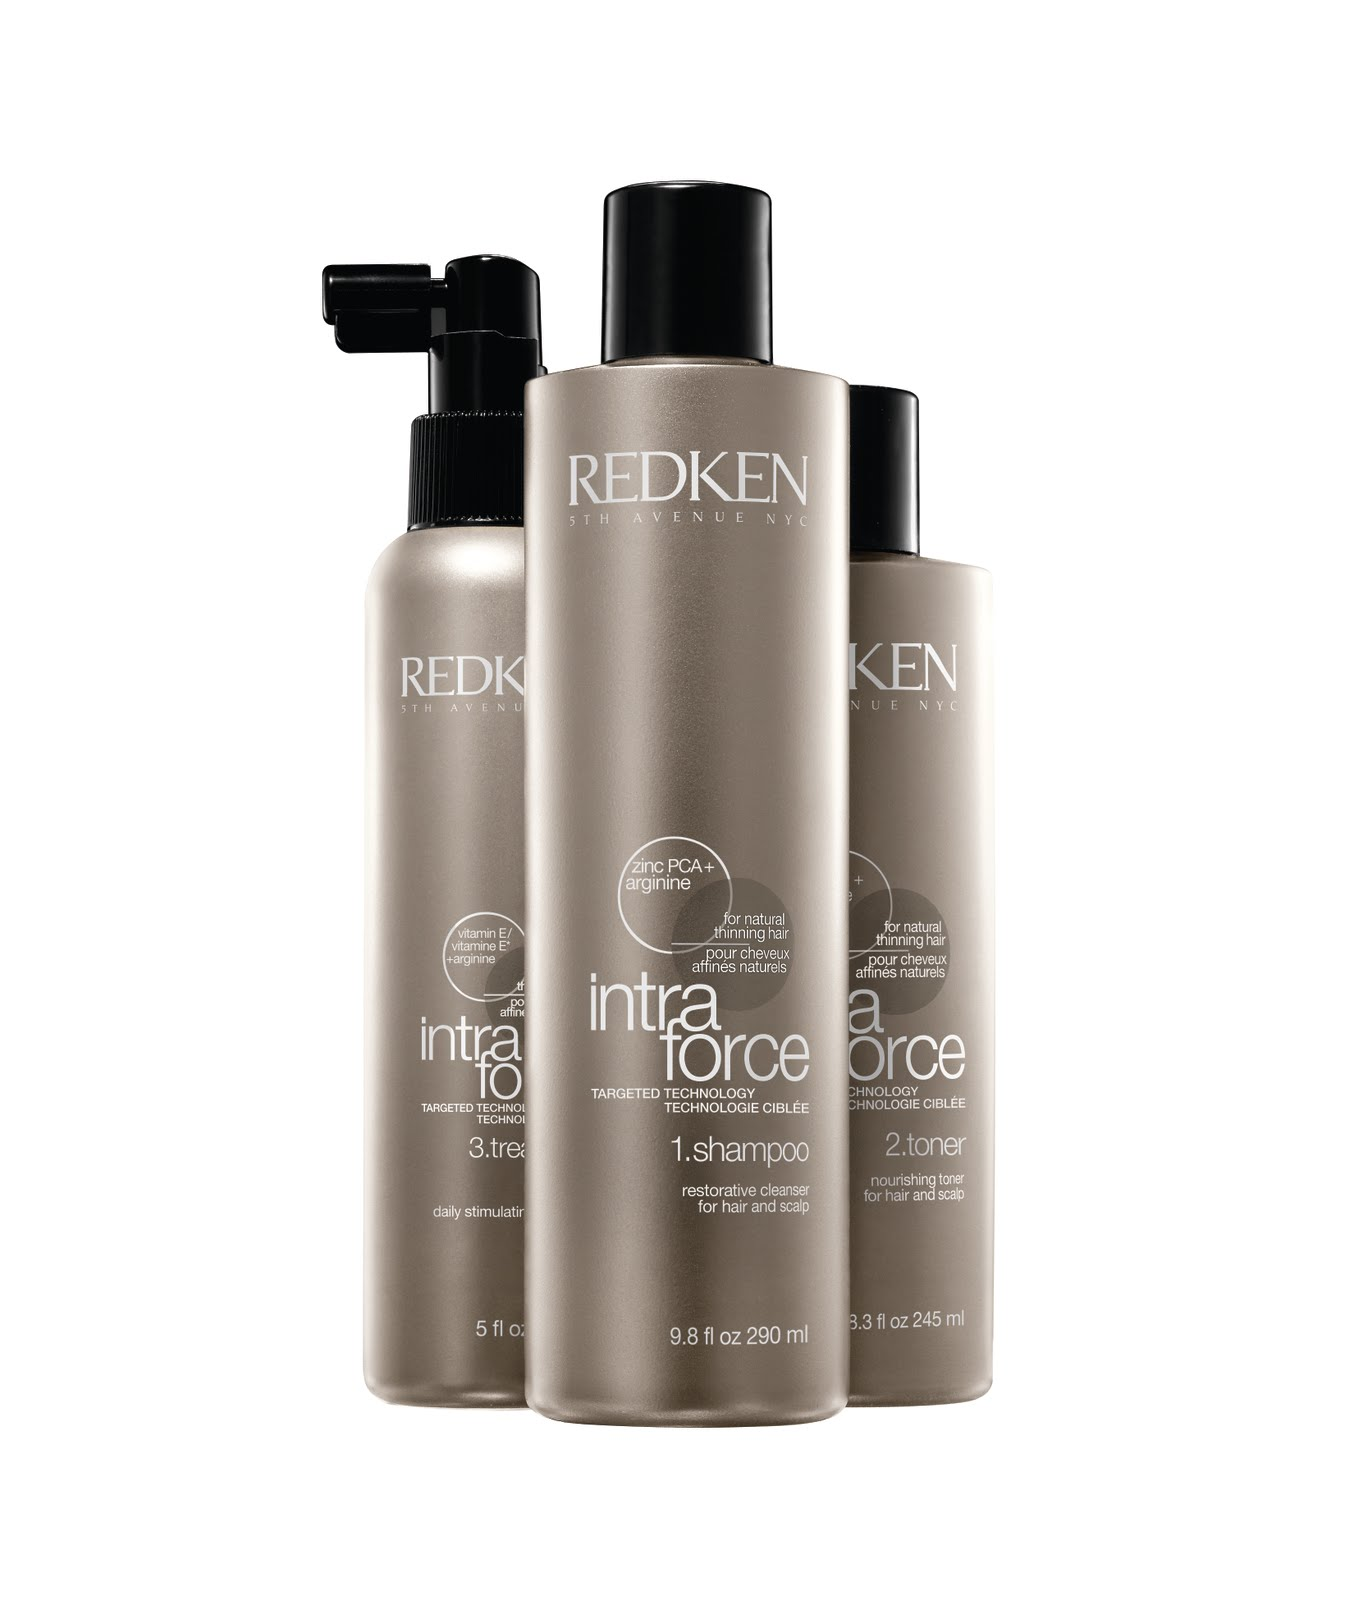 thicker, fuller hair in 30 days! new redken intra force for all